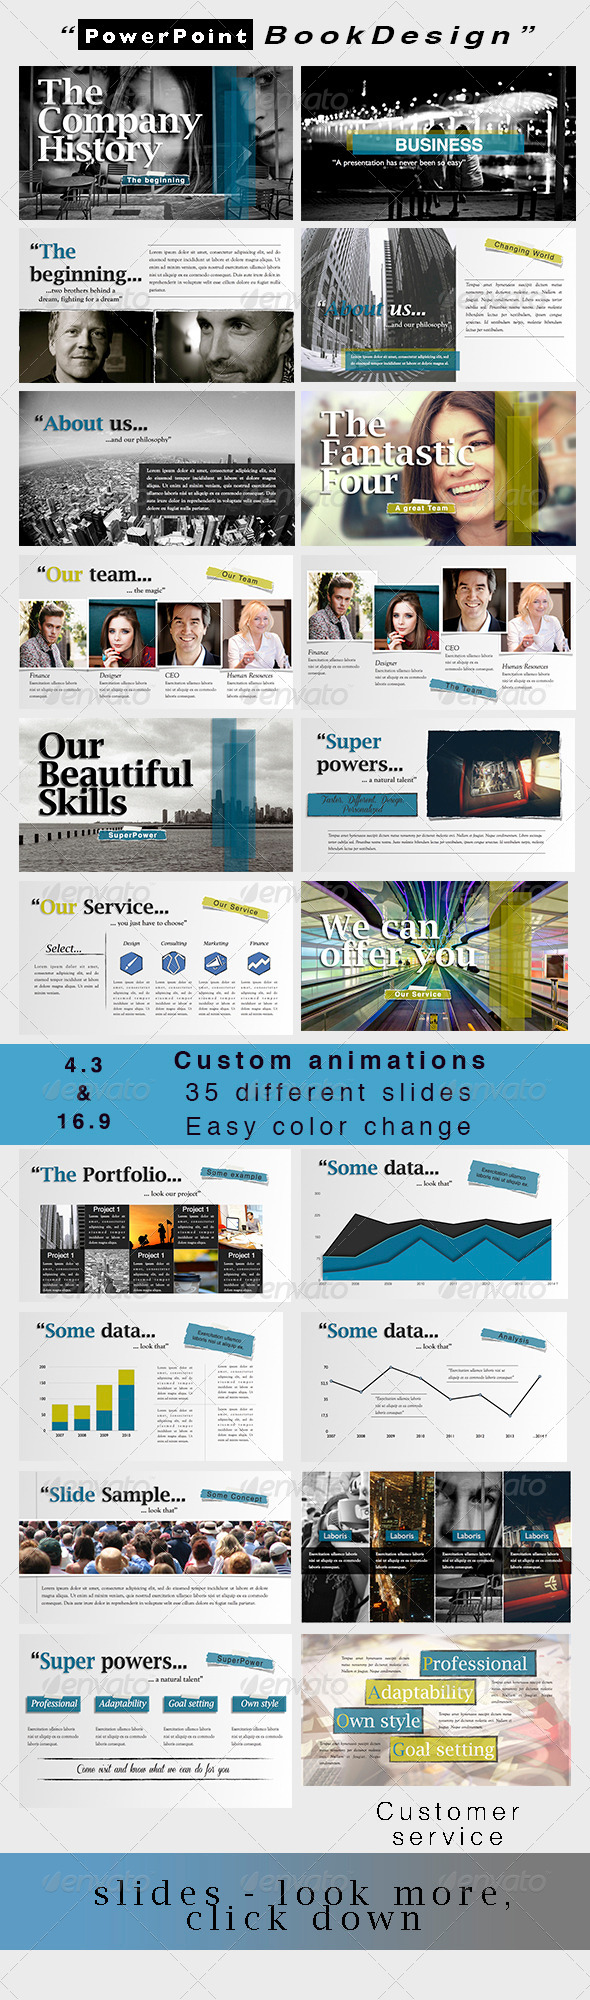 GraphicRiver Powerpoint BookDesign 6480030